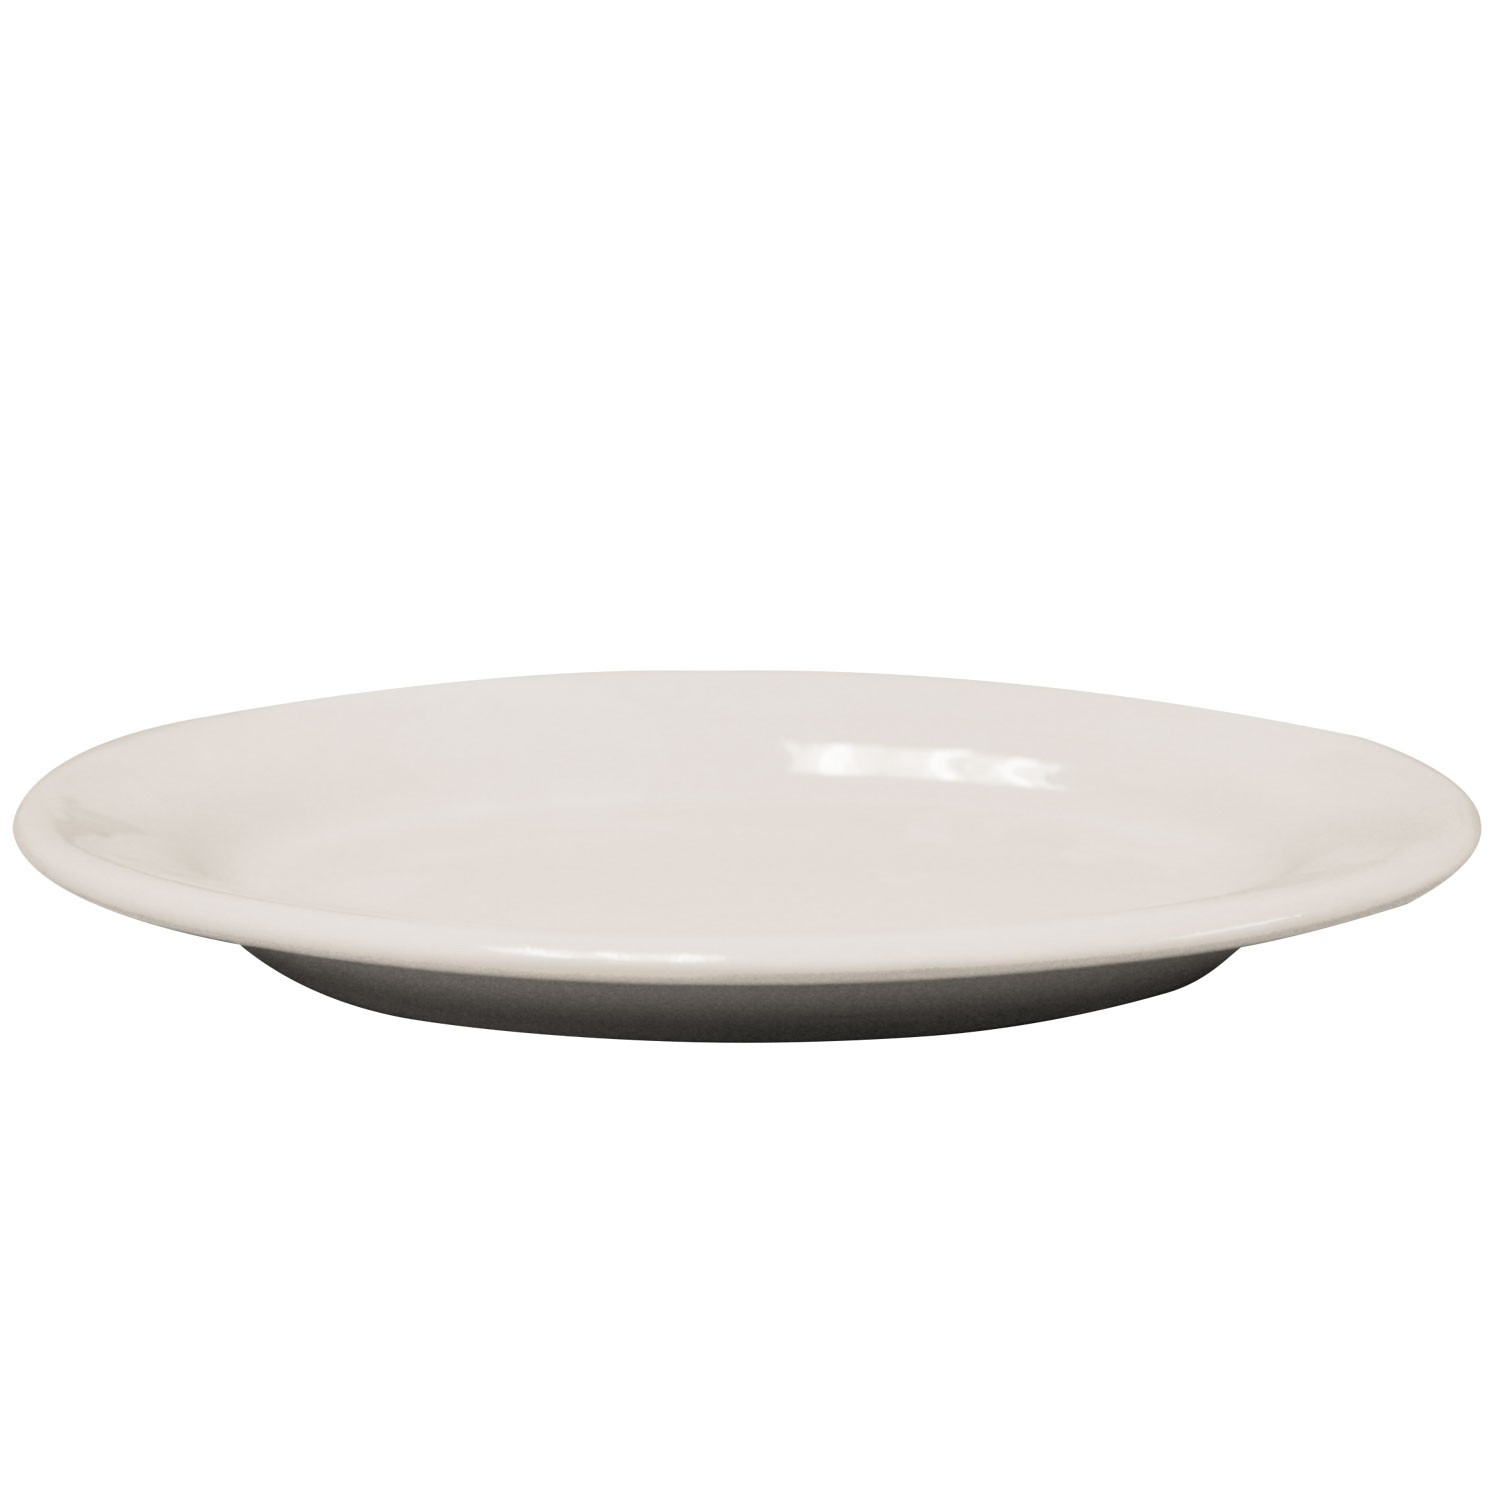 Vertex China BRE-65 Platter - 3 doz